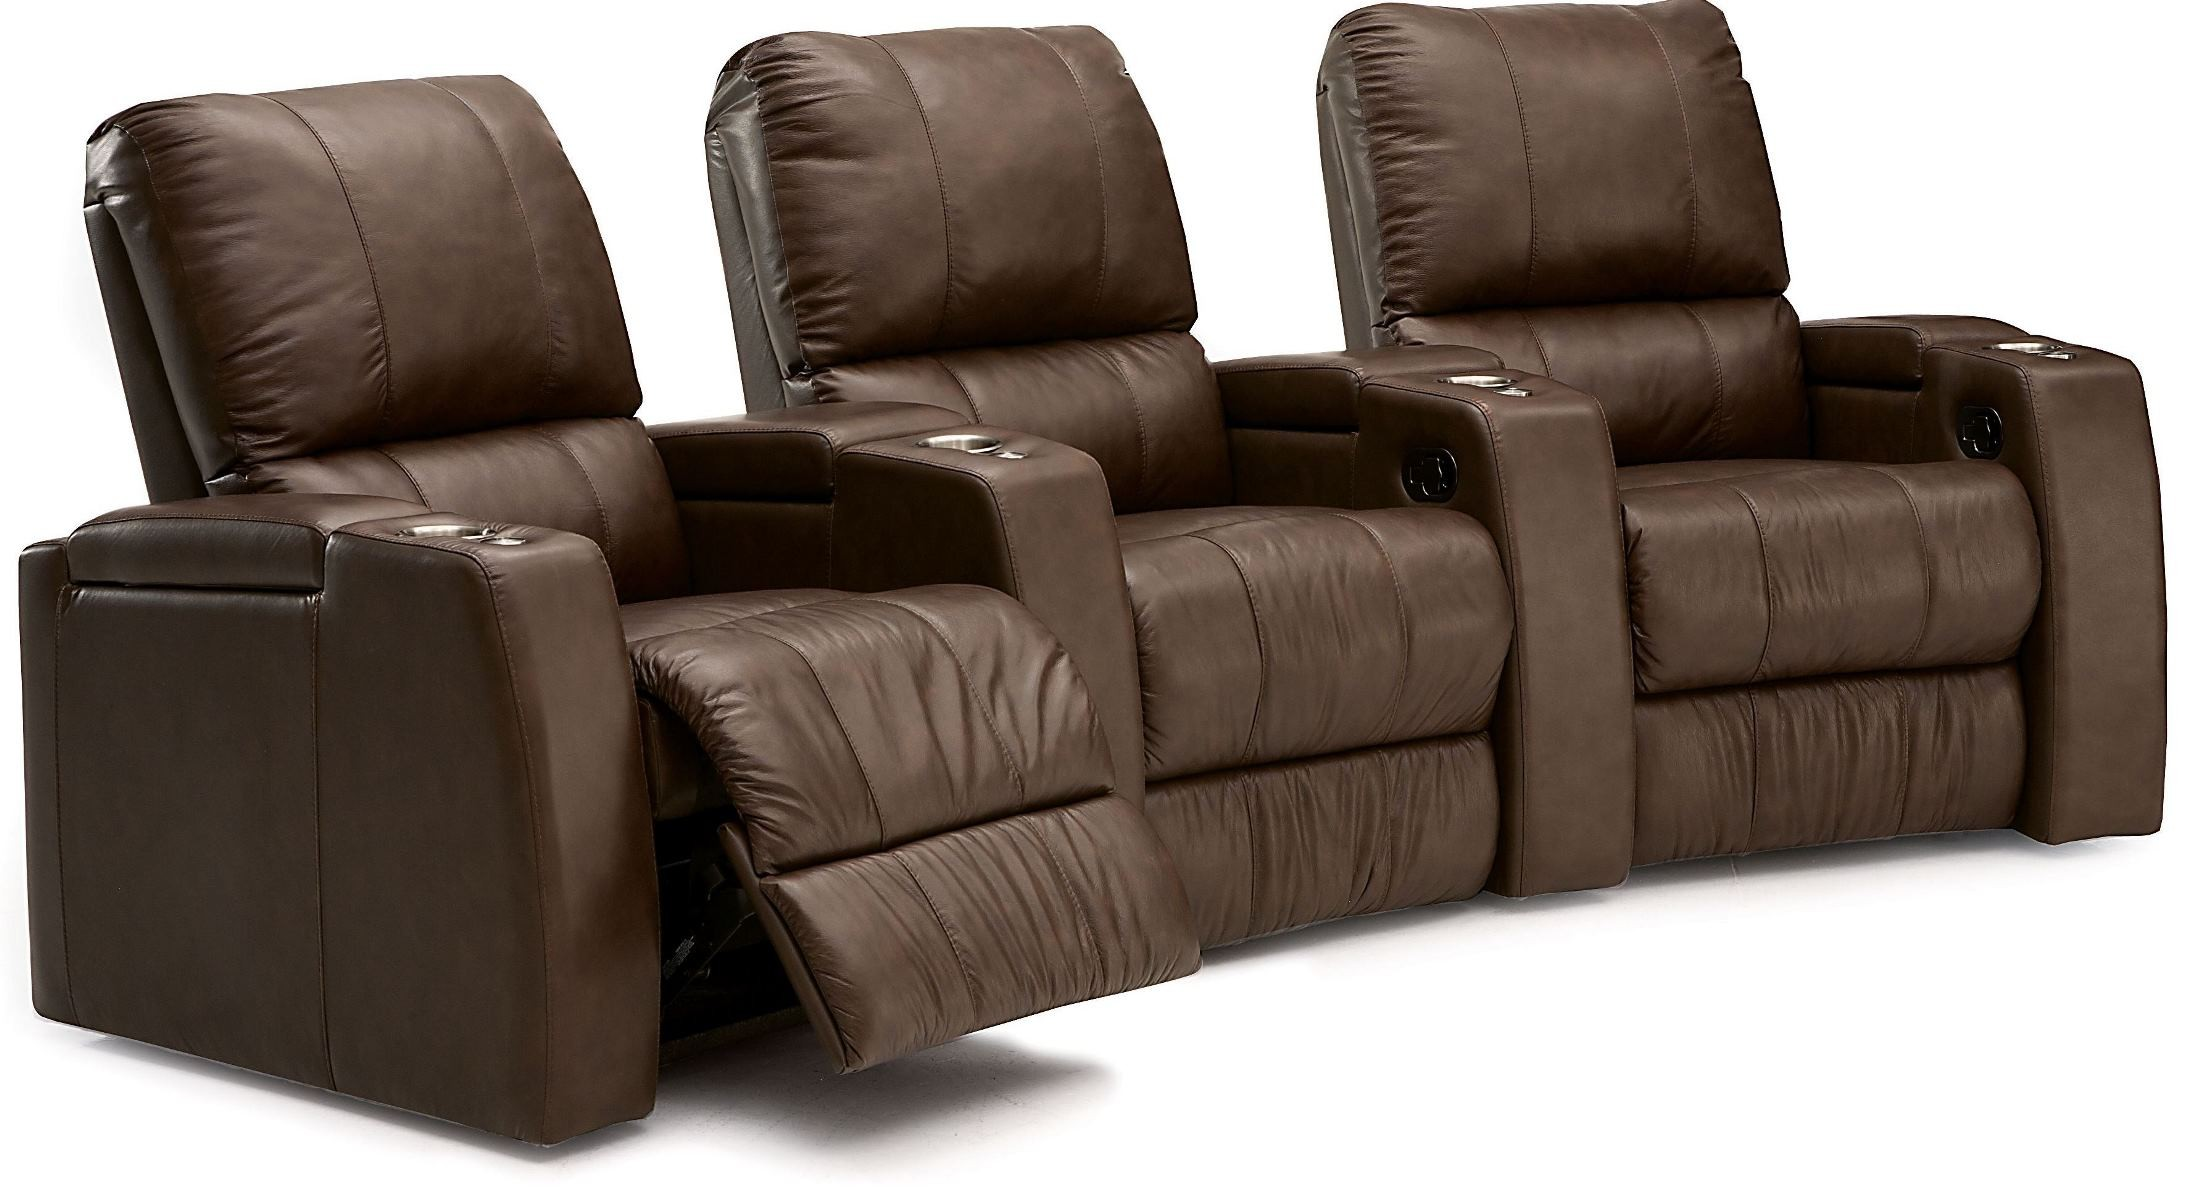 recliner chairs movie theater desk chair covers for sale playback leather home theatre seating psr 41403